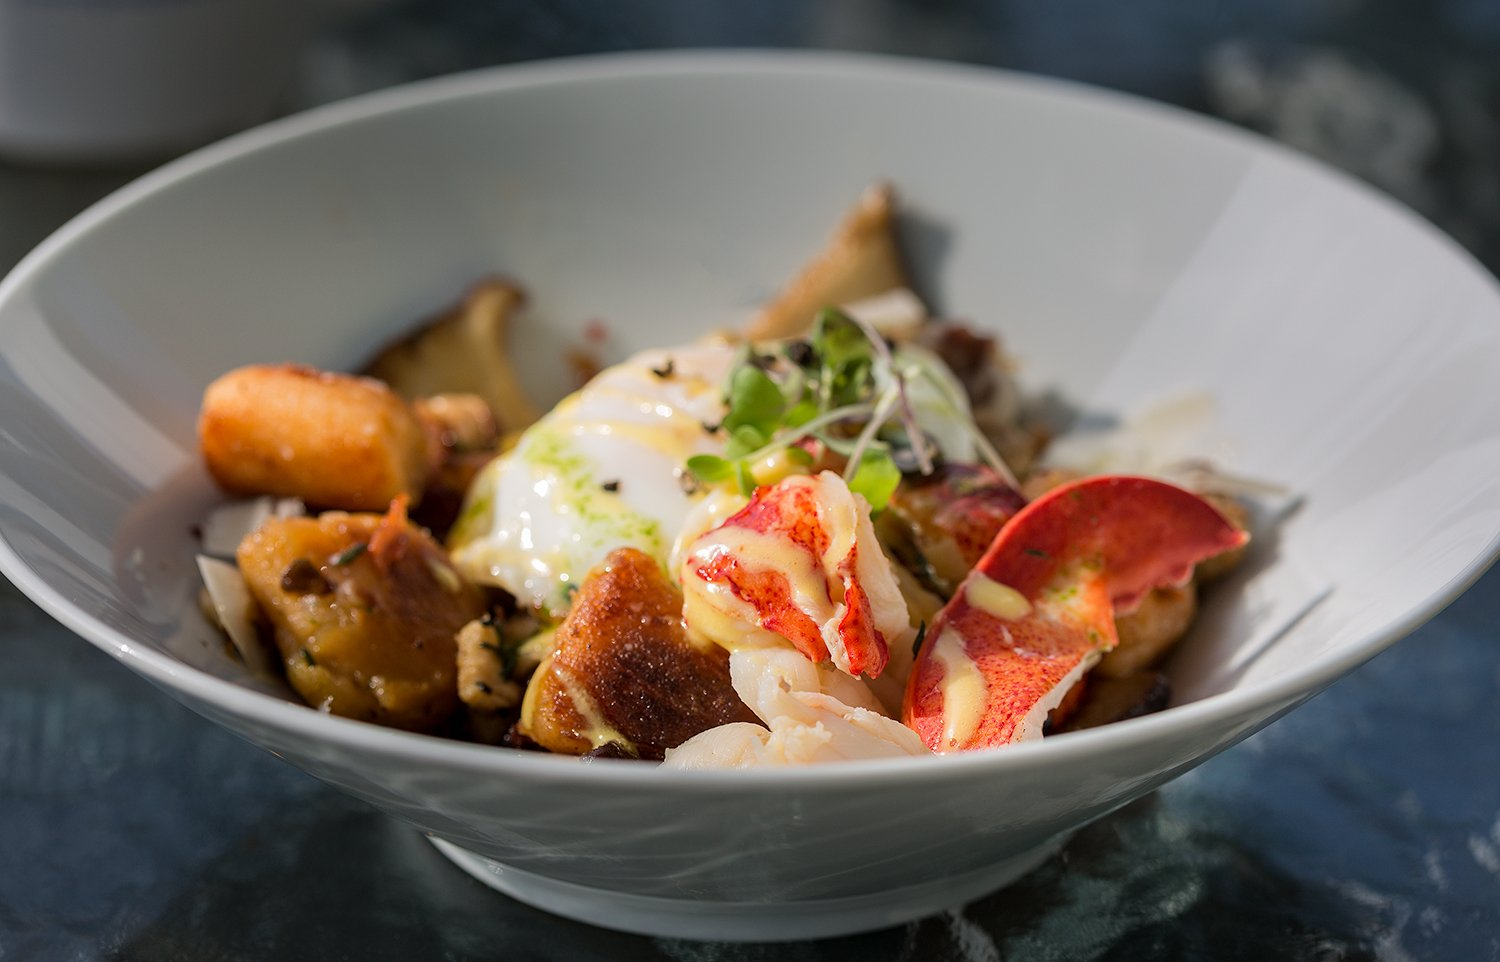 Homemade Gnocchi with champagne poached lobster, locally foraged mushrooms and a sunny side egg.